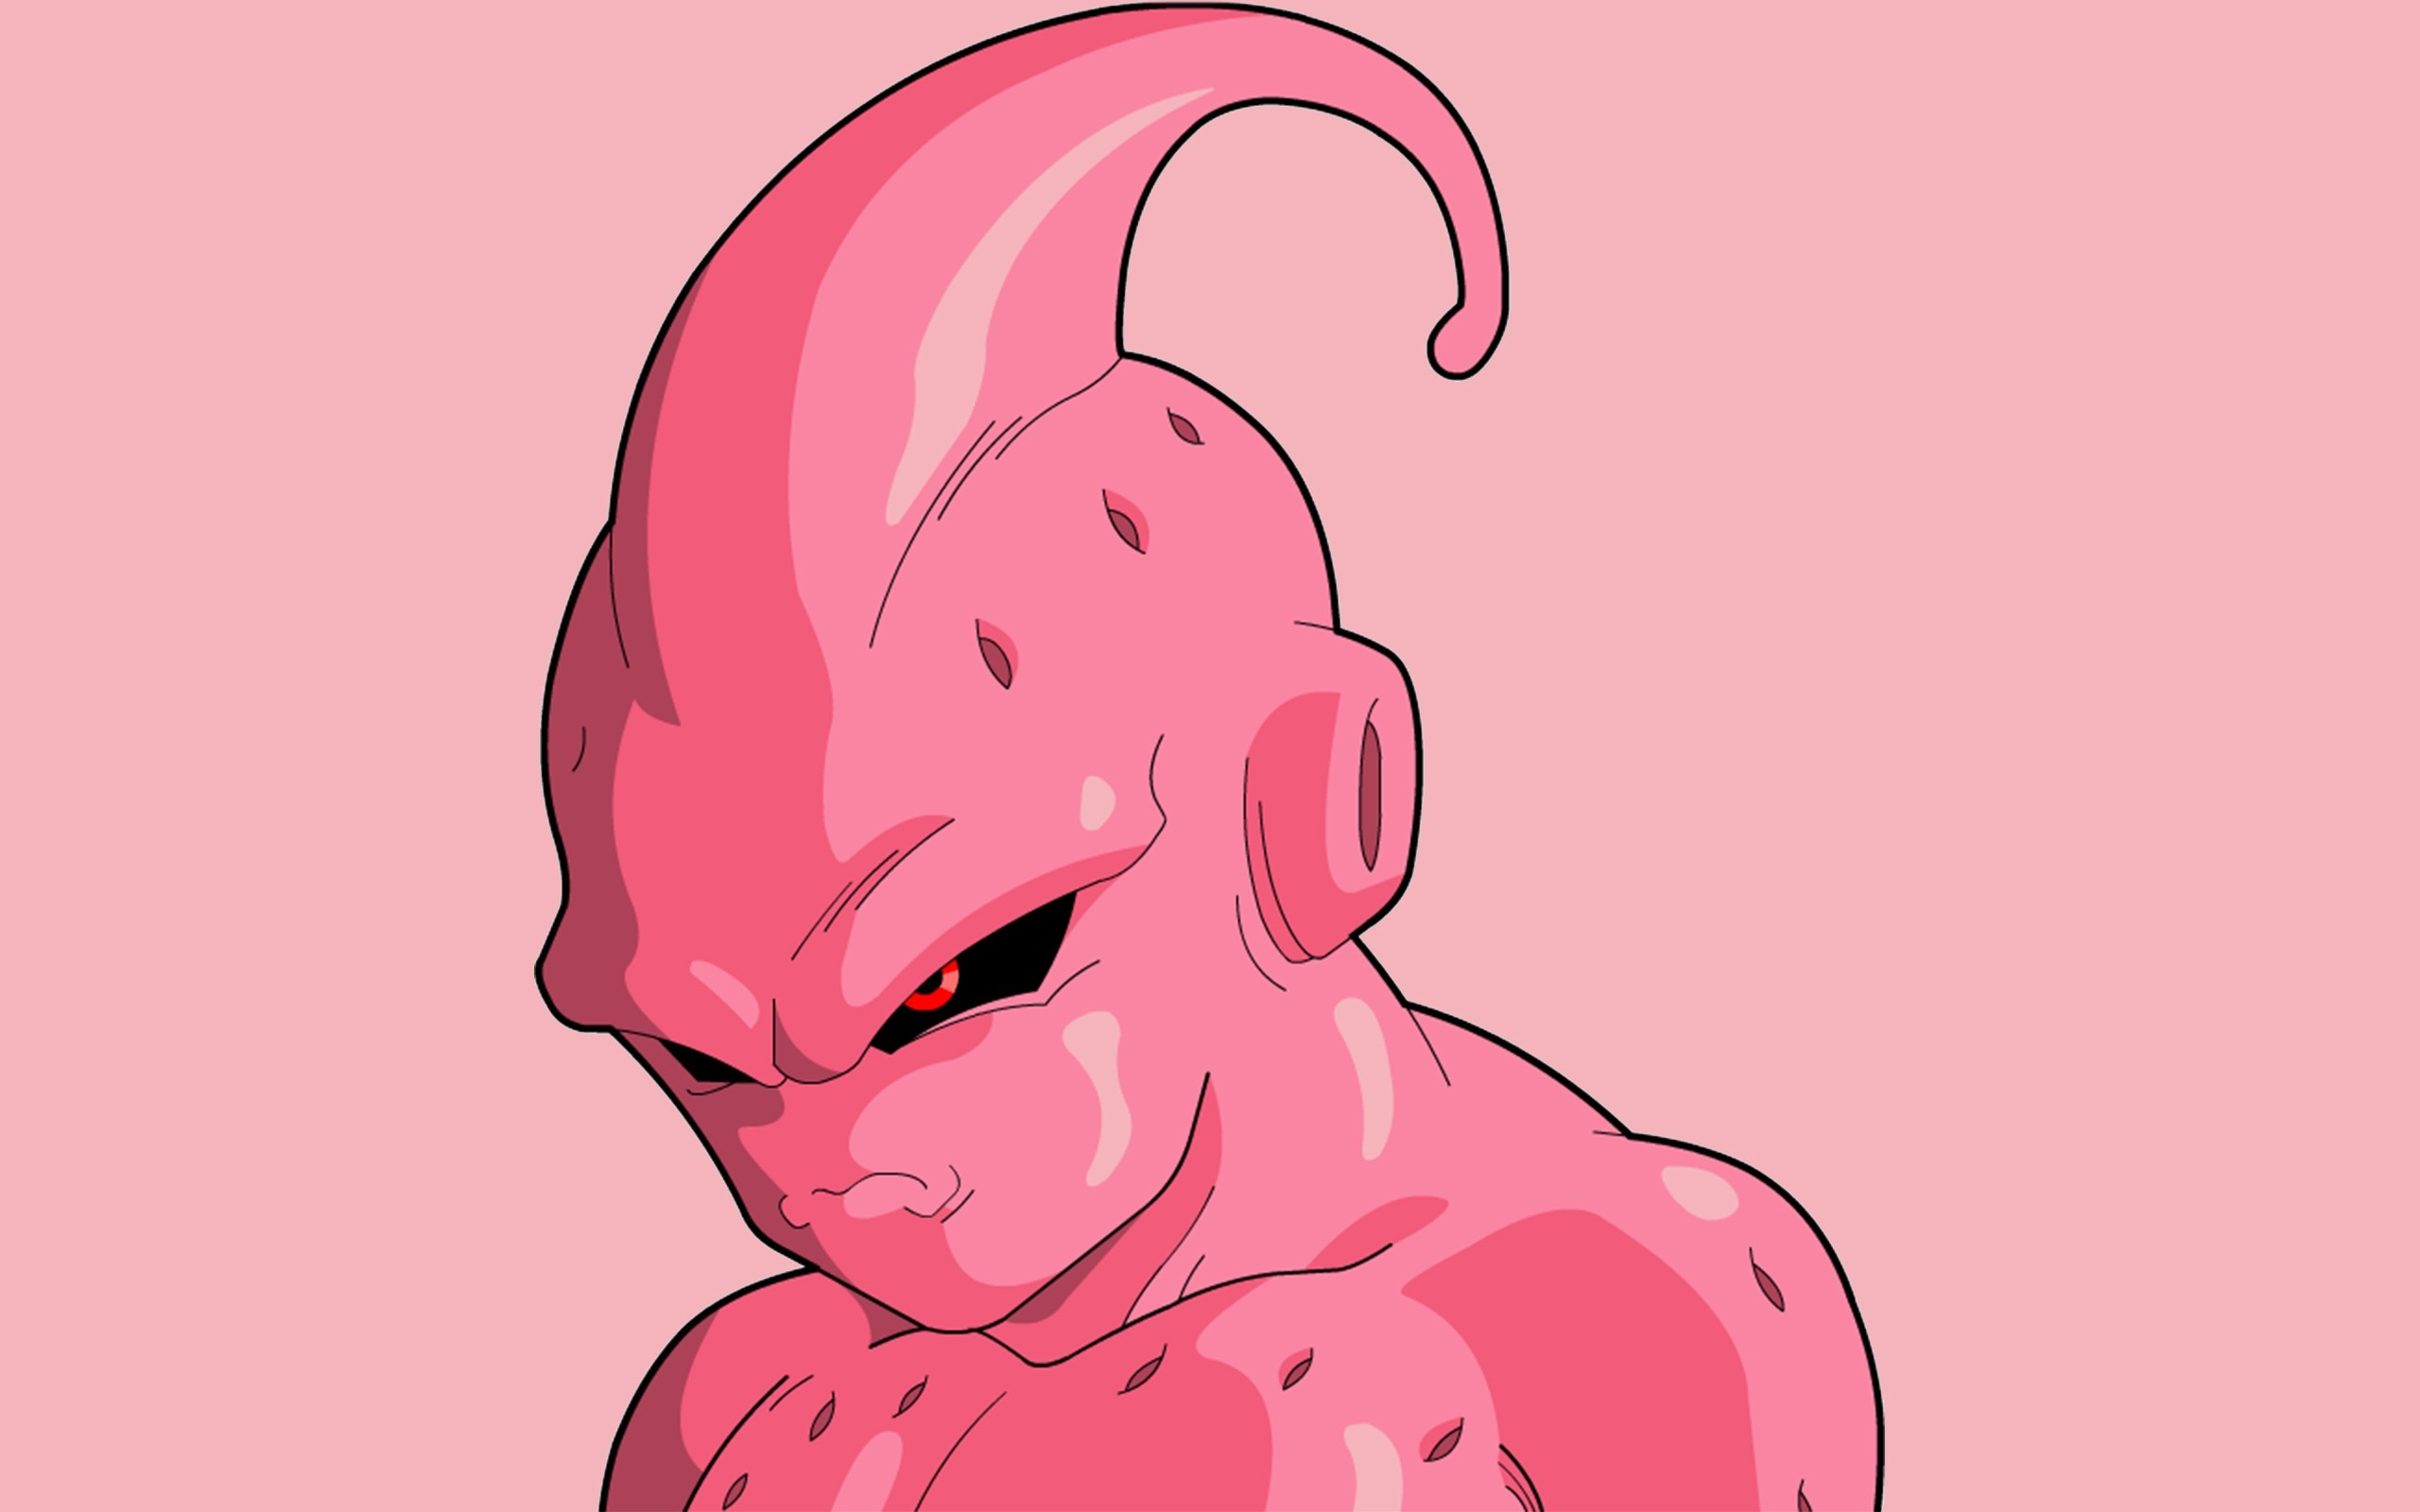 Res: 2560x1600, Kid Buu Images, 16/03/2018 171.65 Kb